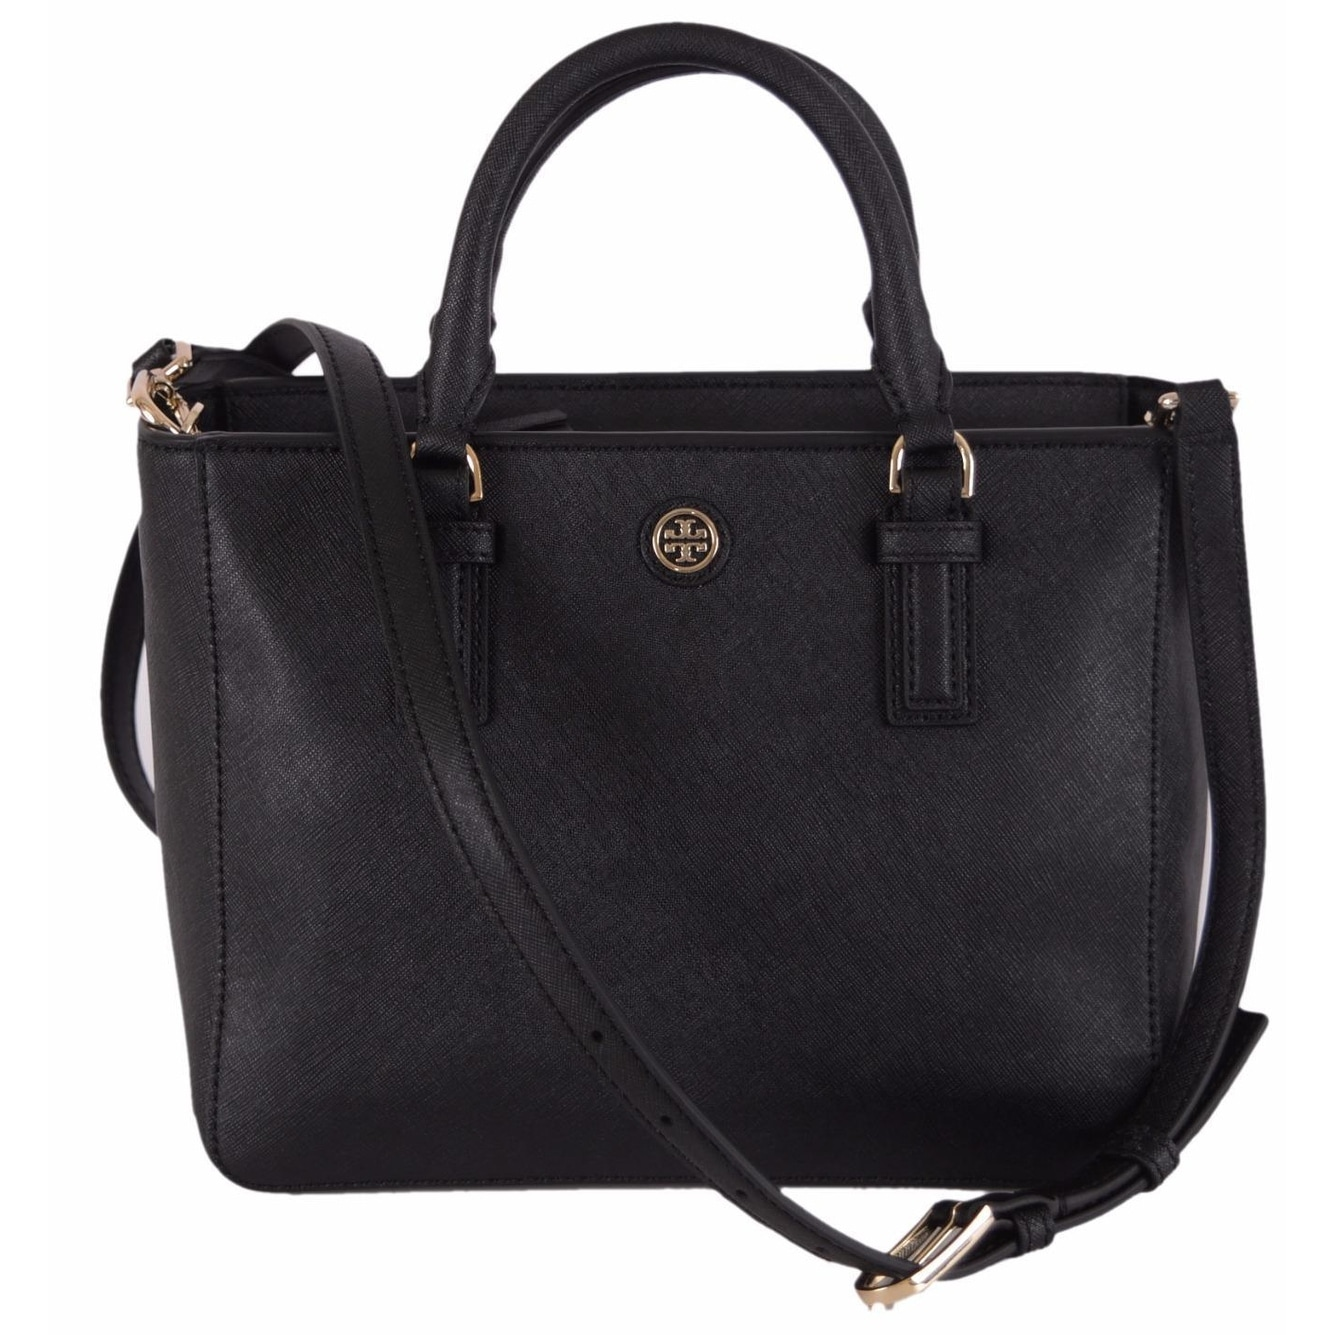 65e18083f27 Tory Burch 41159710 Black Saffiano Leather Robinson Mini Square Tote Purse  - 9.36